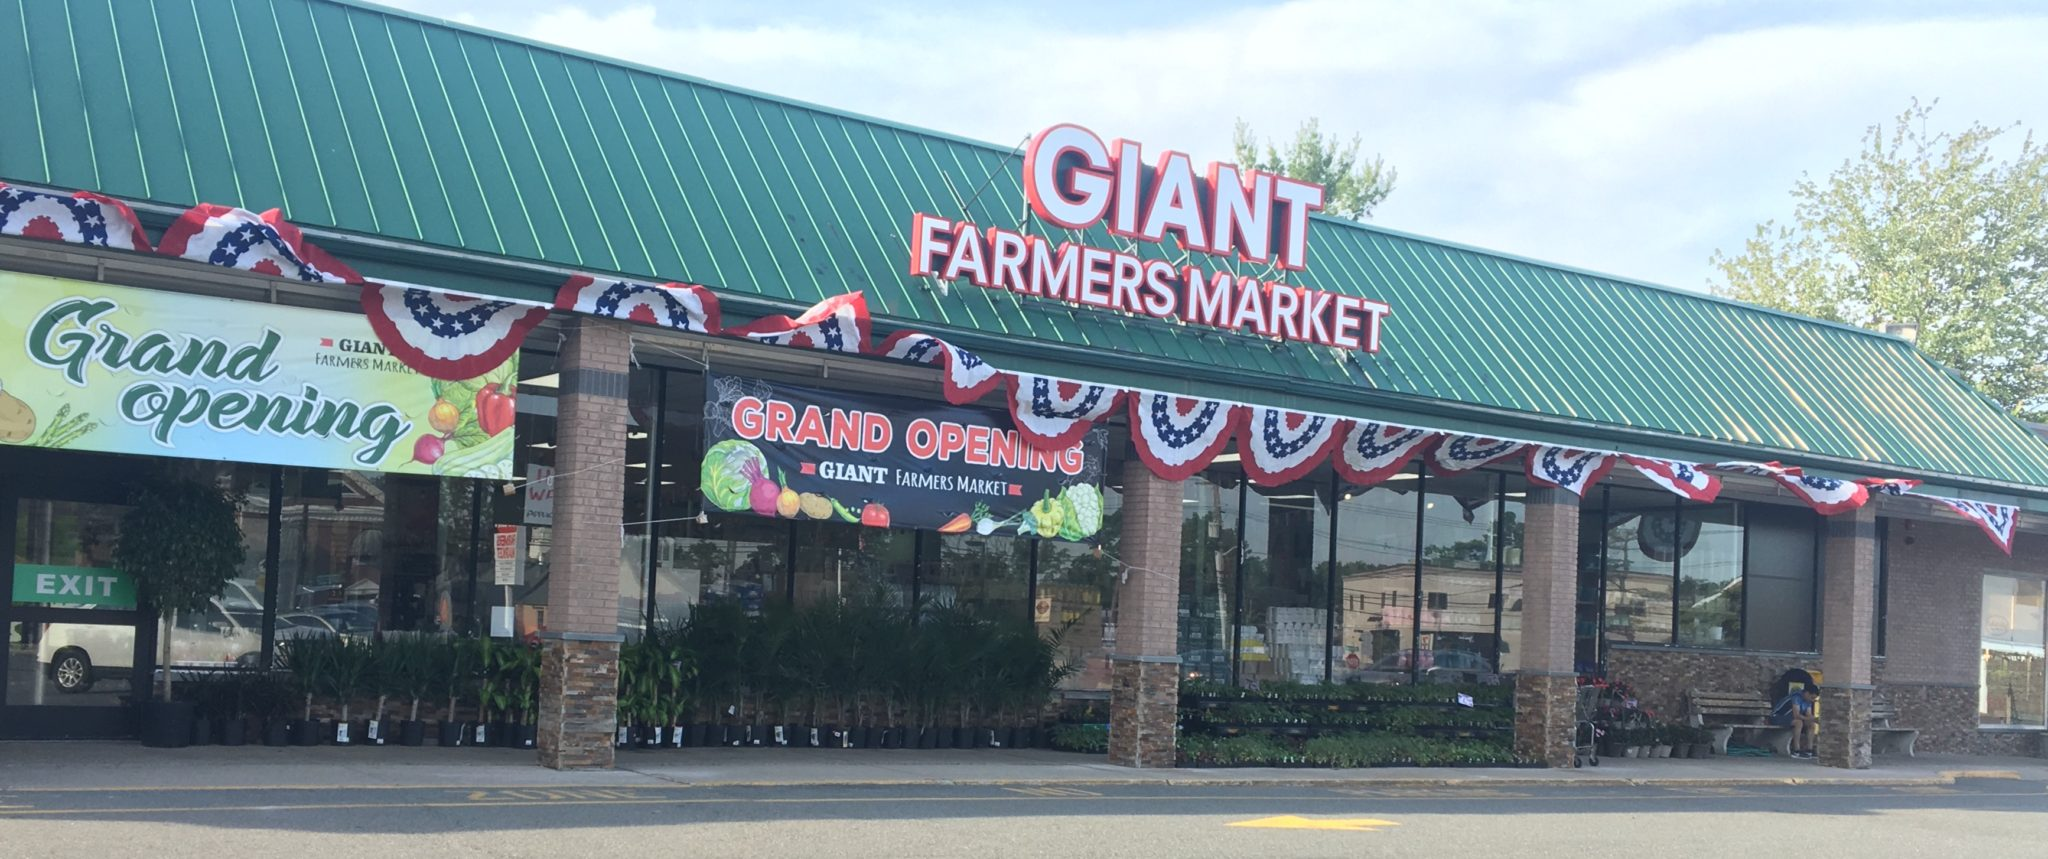 Giant Farmers Market - Waldwick, NJ